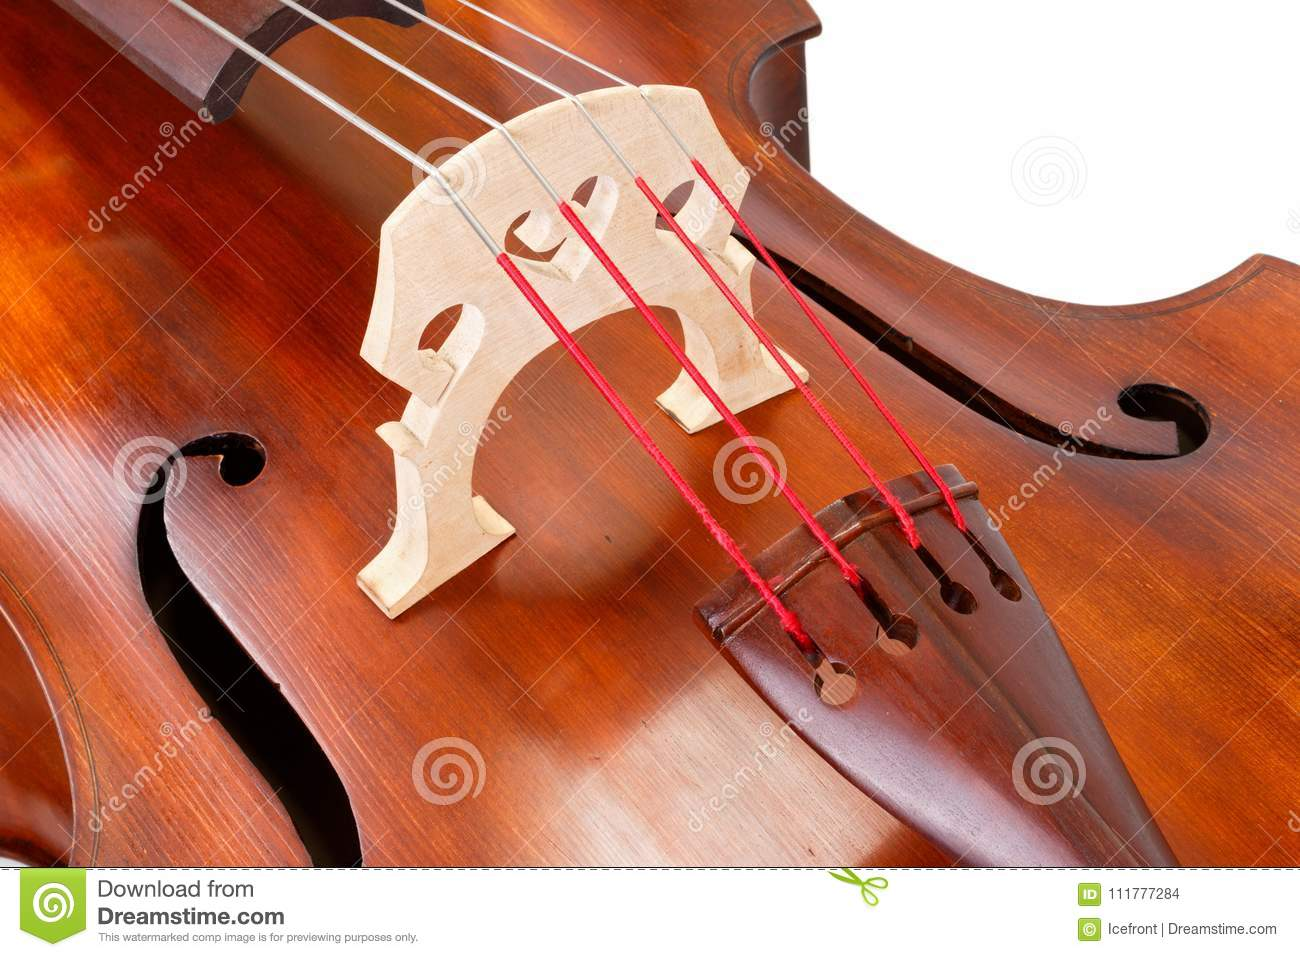 Bridge and strings on a contrabass